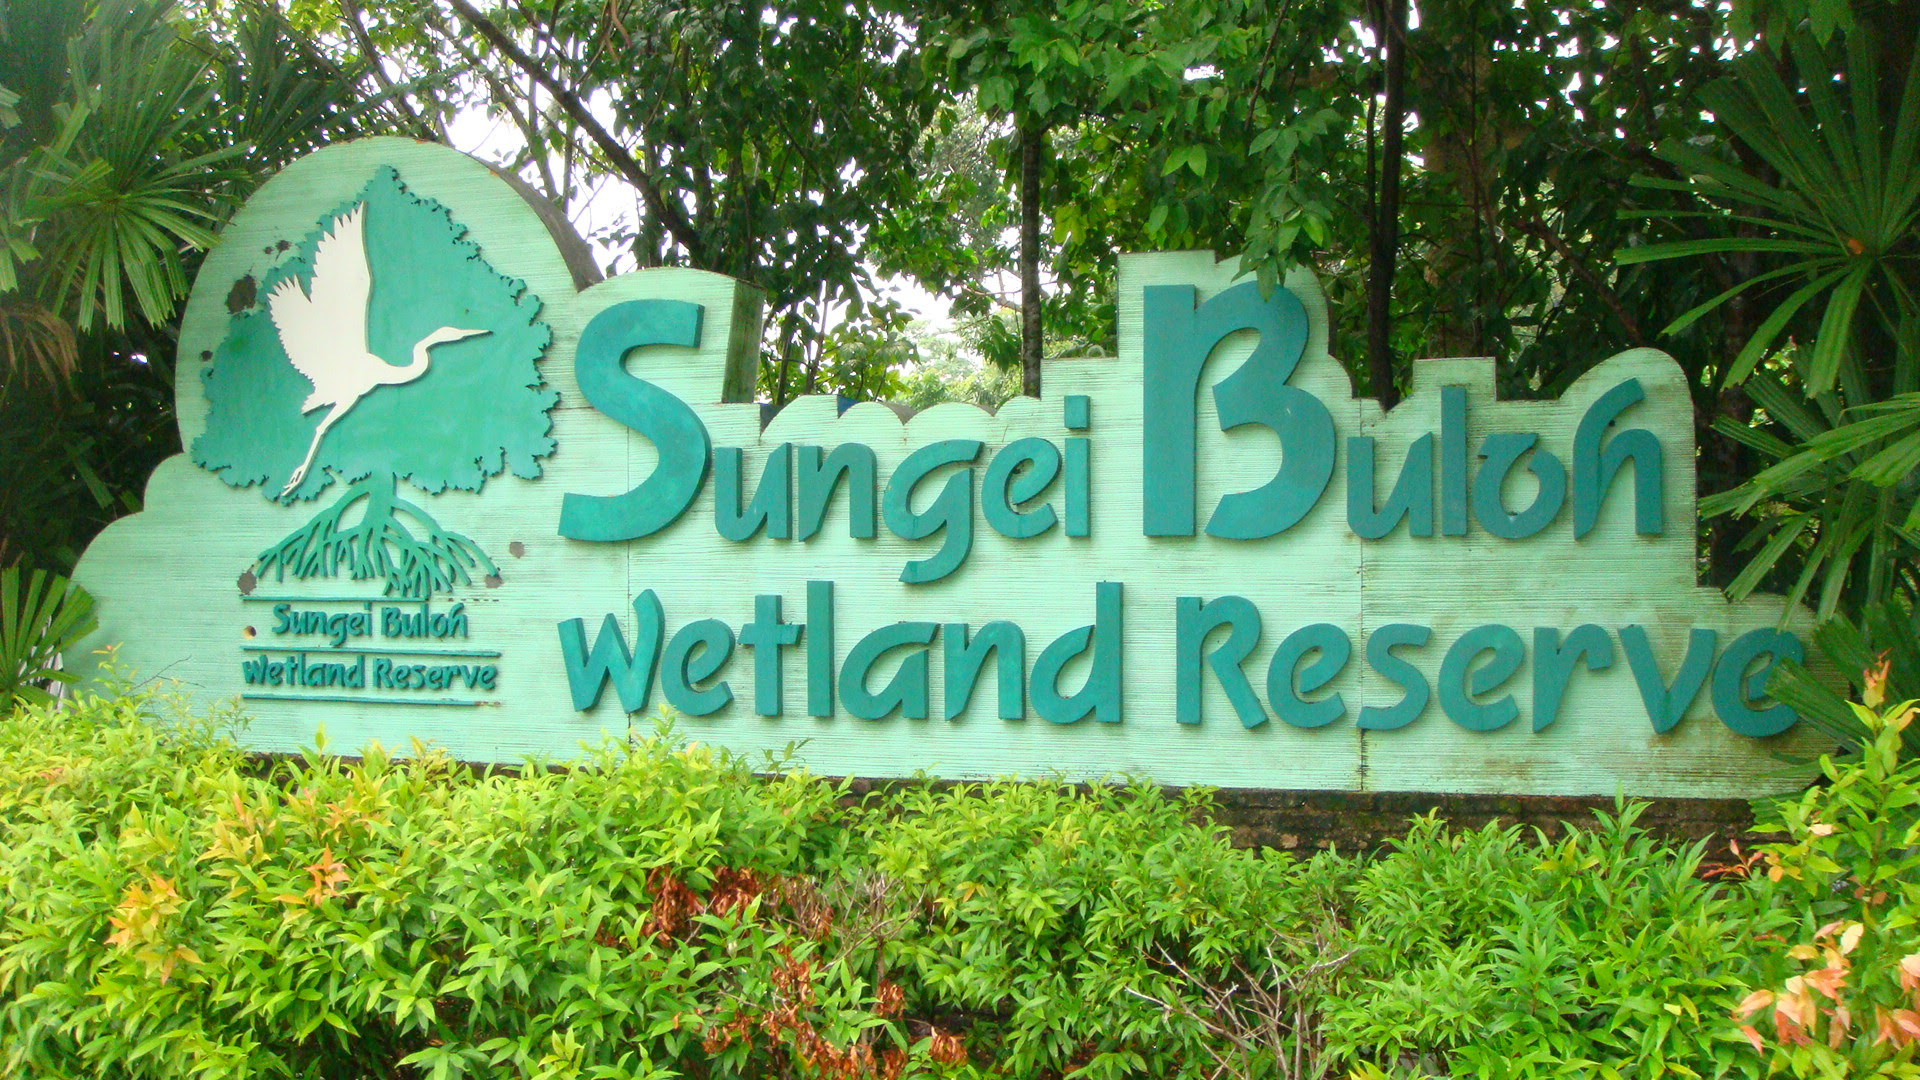 Sungei Buloh Wetland Reserve Singapore Location Map,Location Map of Sungei Buloh Wetland Reserve Singapore,Sungei Buloh Wetland Reserve Singapore accommodation destinations attractions hotels map reviews photos pictures,Sungei Buloh Nature Park,sungei buloh wetland reserve plants migratory birds history crocodile mangrove